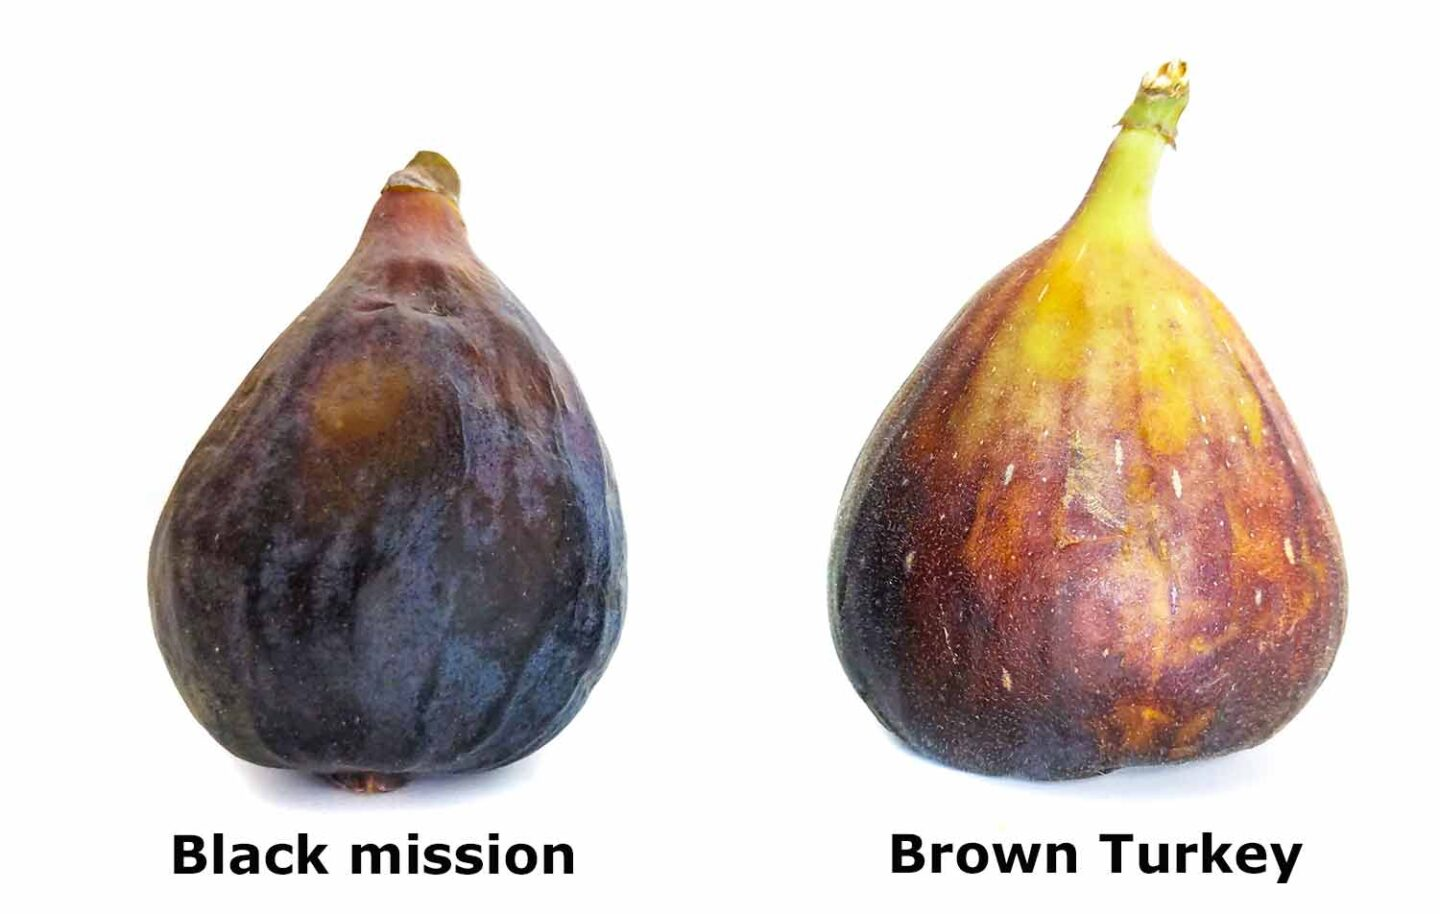 Black mission and Brown Turkey figs, the most commonly available varieties.